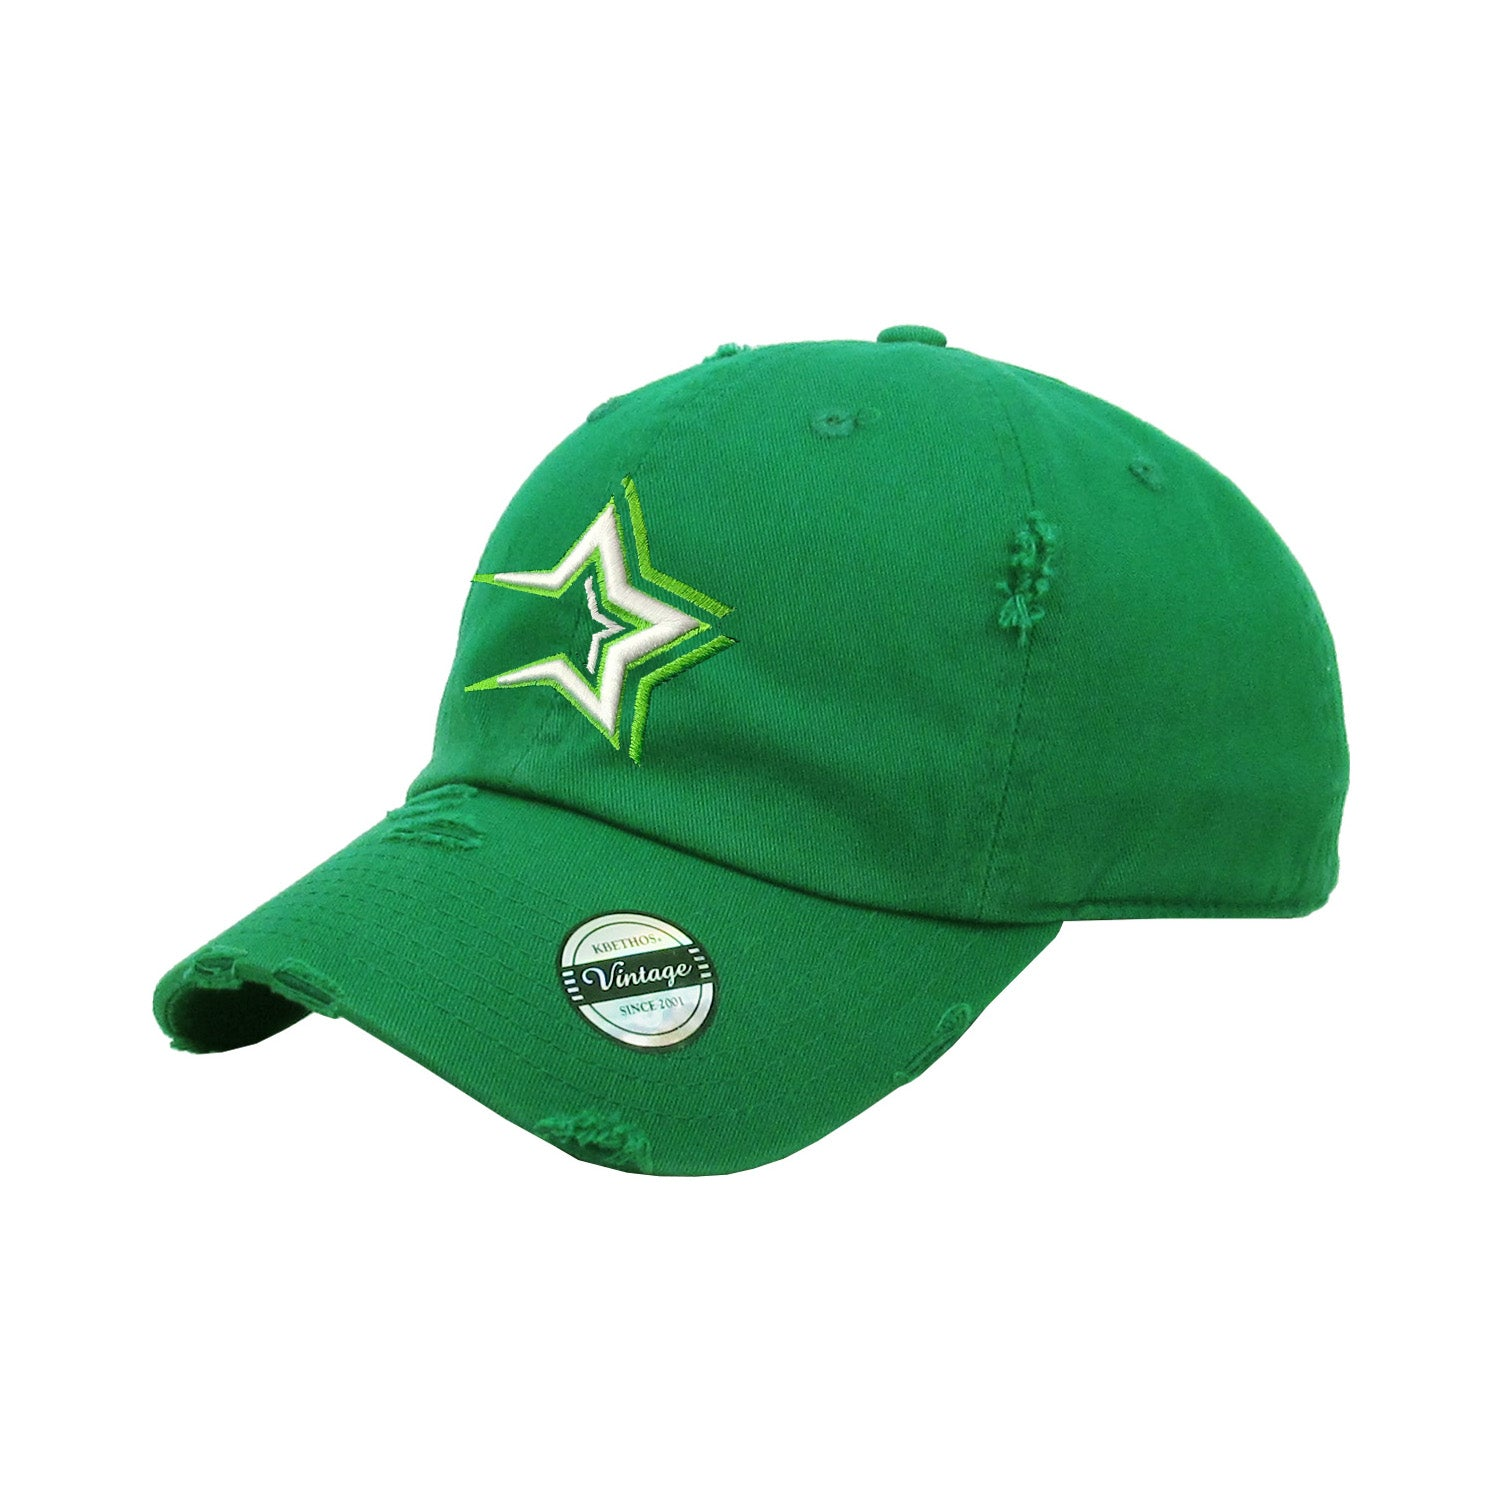 317a0cb9d3b Estrellas Orientales Embroidered Vintage Kelly Green Hat – Peligro Sports